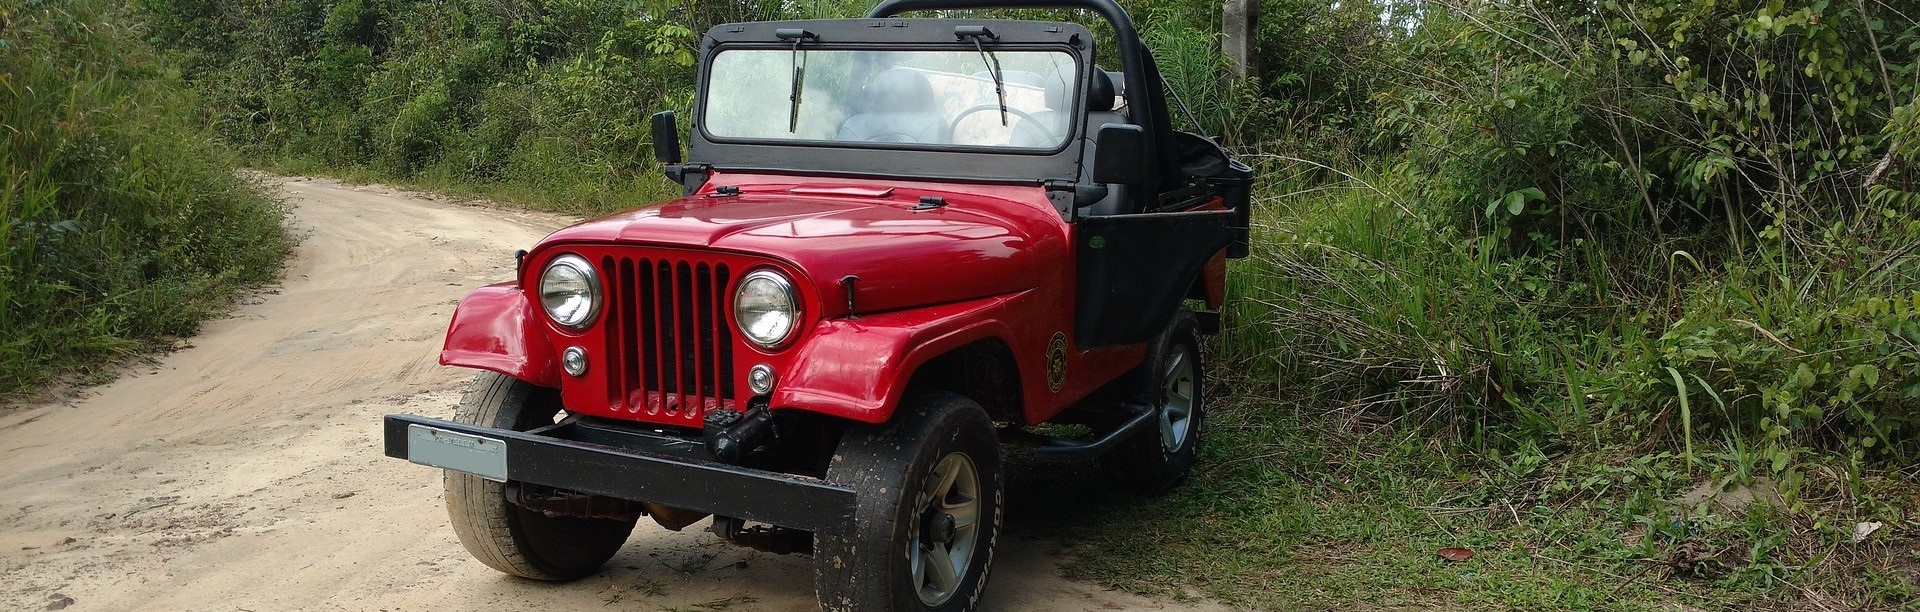 Oldtimer Jeep in Clearwater, Florida | Breast Cancer Car Donations